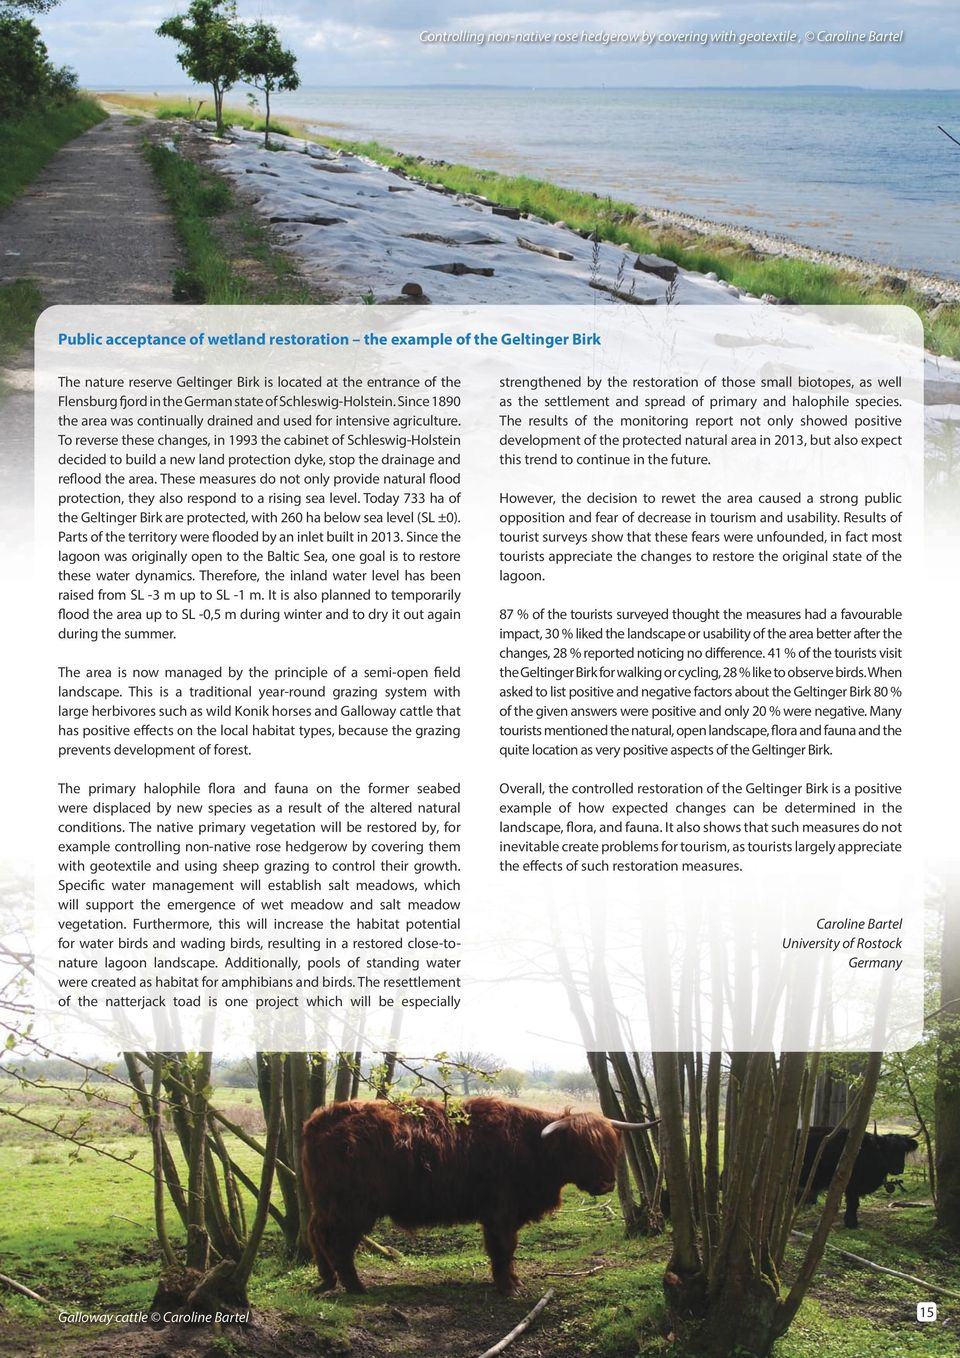 To reverse these changes, in 1993 the cabinet of Schleswig-Holstein decided to build a new land protection dyke, stop the drainage and reflood the area.